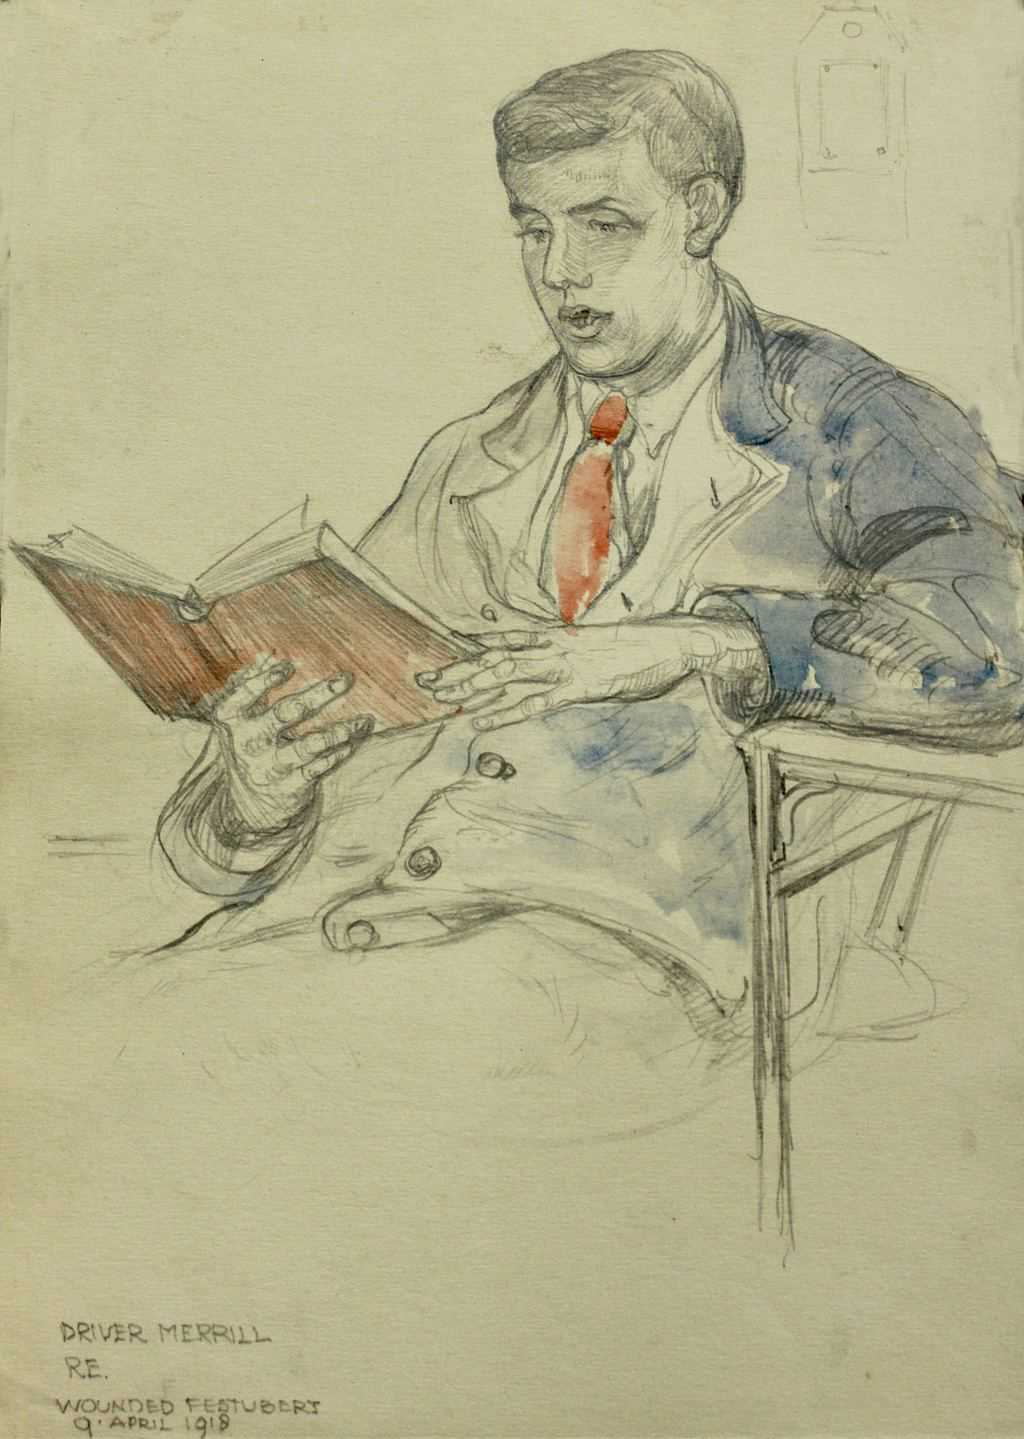 Sketch of Driver MERRILL RE / Wounded Festubert 9 April 1918